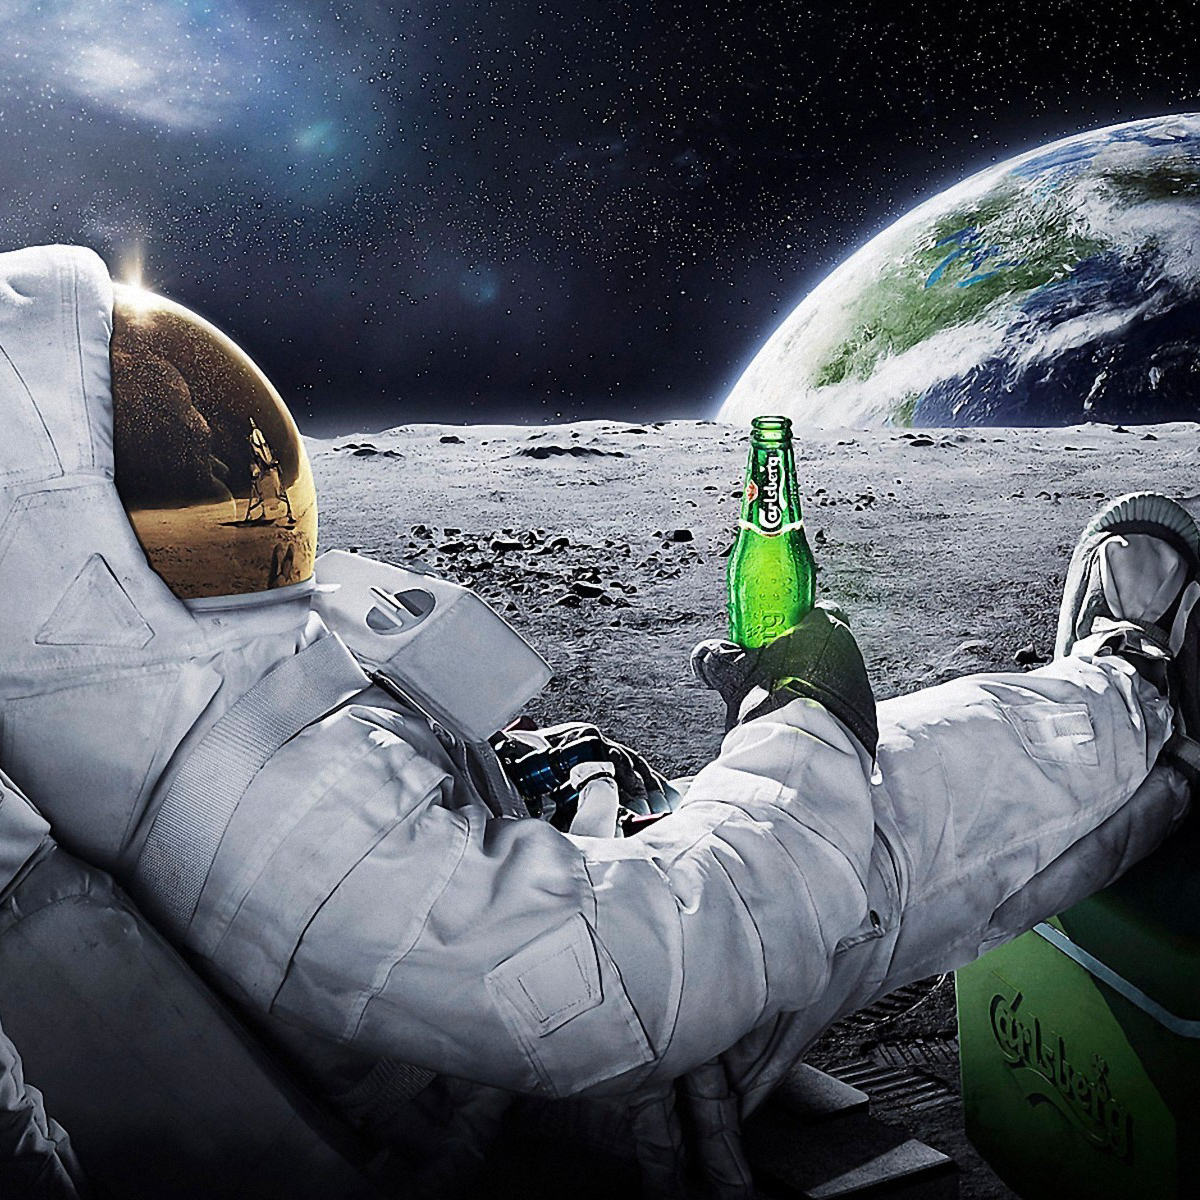 That beer would go flat VERY QUICKLY